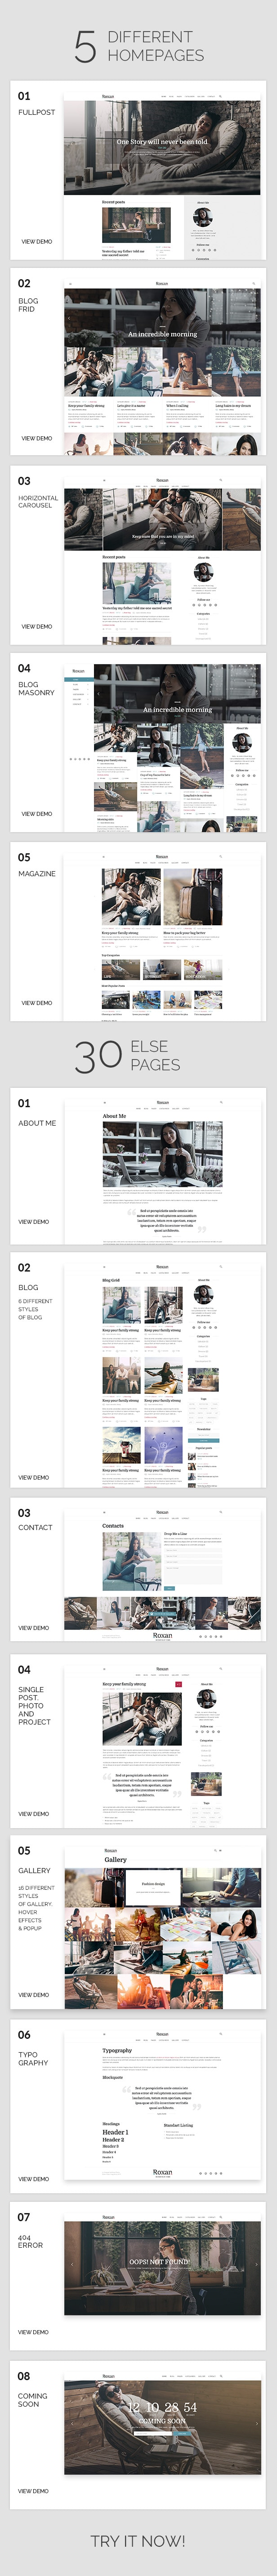 regina Blog WordPress Theme